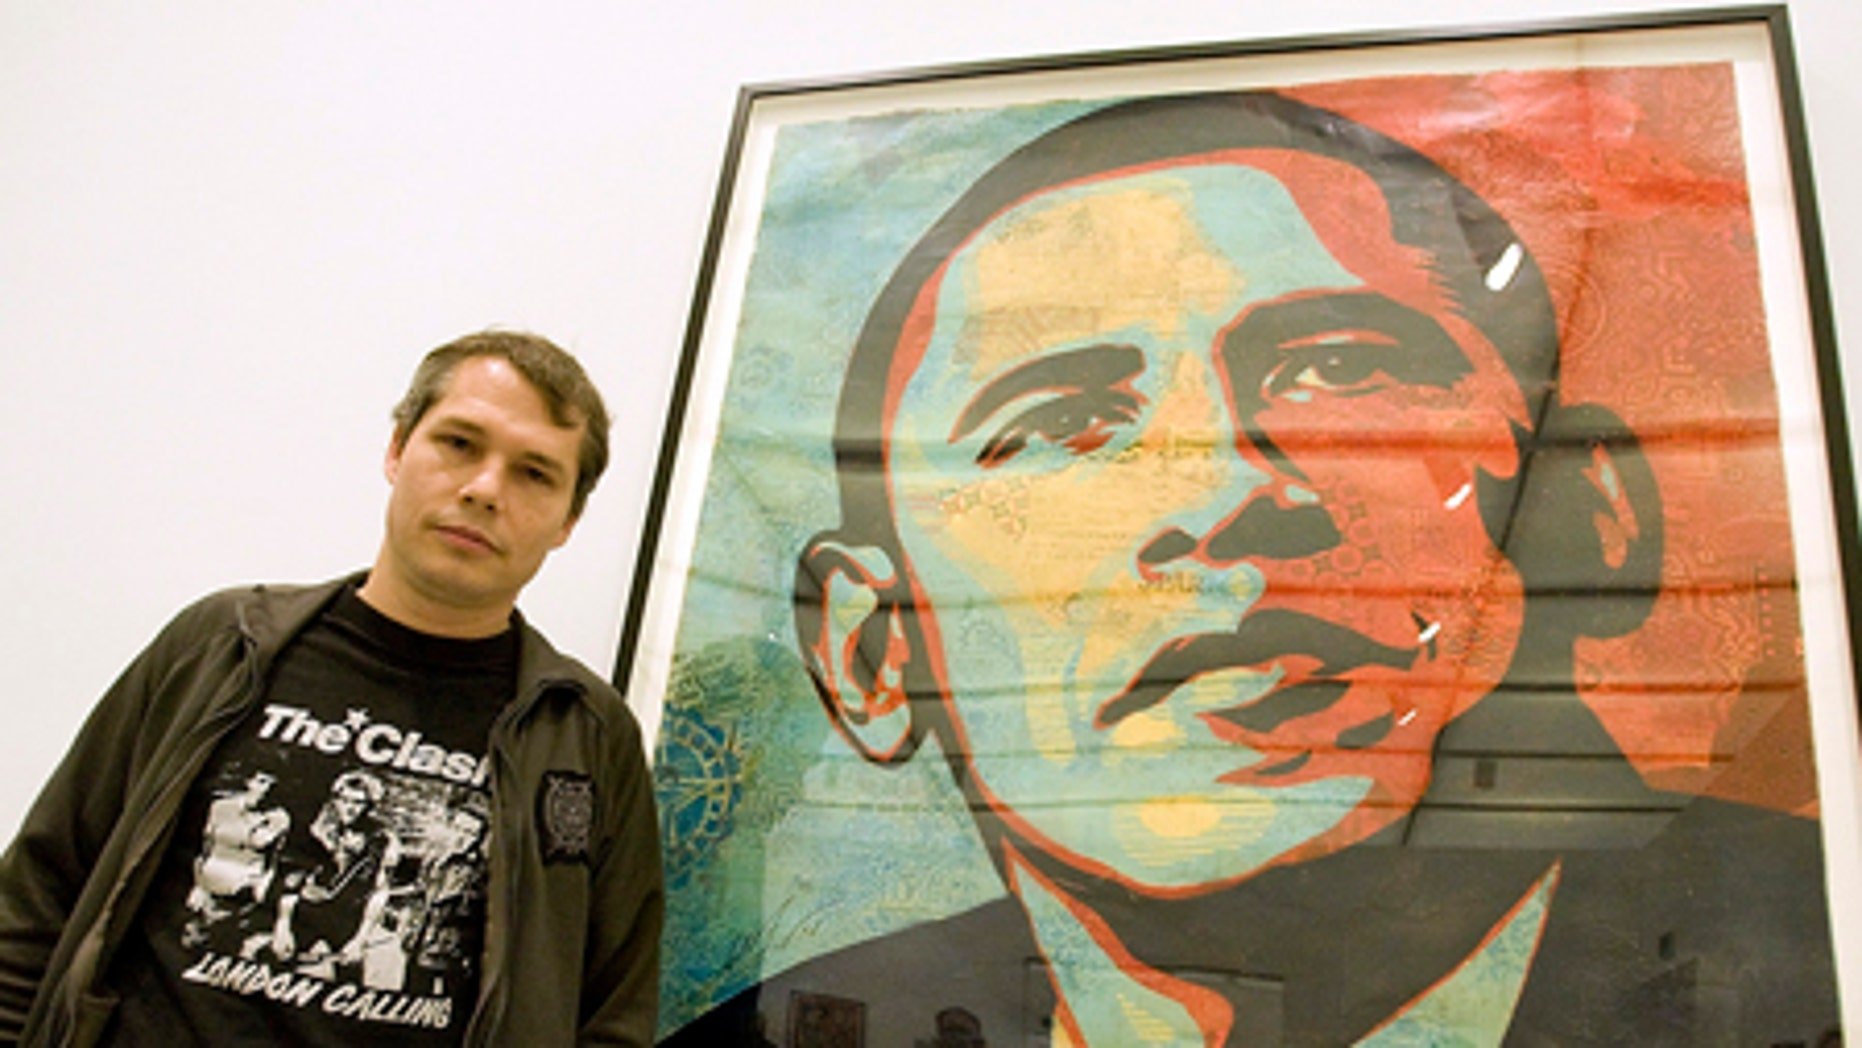 """Feb. 3, 2009: Artist Shepard Fairey poses beside his """"Obama HOPE"""" image, part of an exhibit of his work at the Institute of Contemporary Art."""